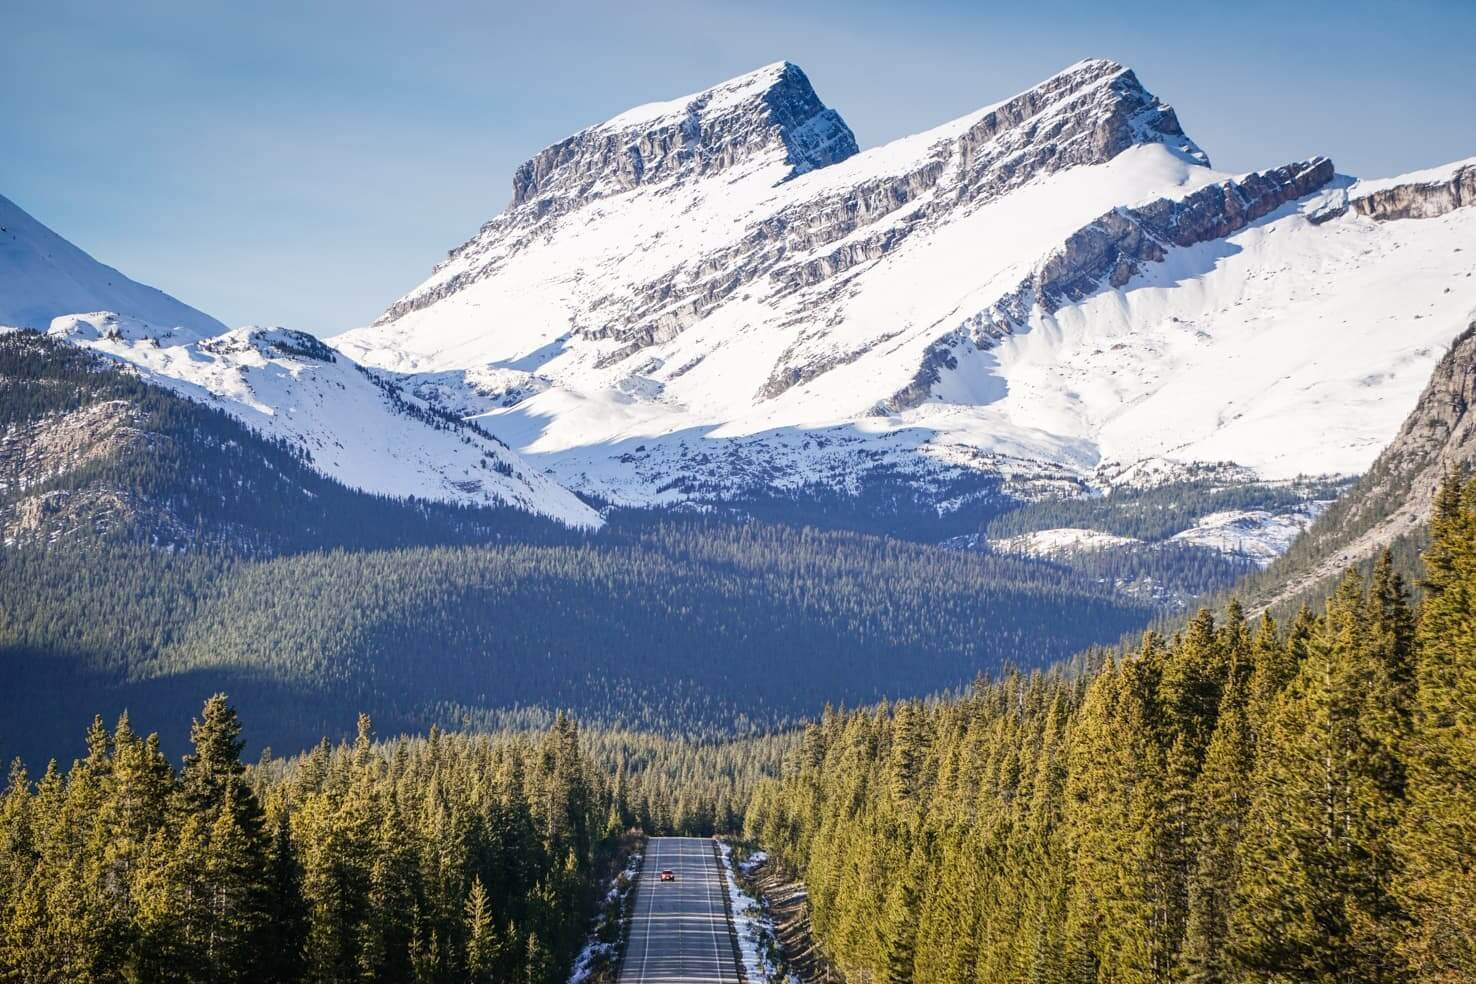 Canadian Rockies road trip itinerary - Icefields Parkway, Jasper National Park